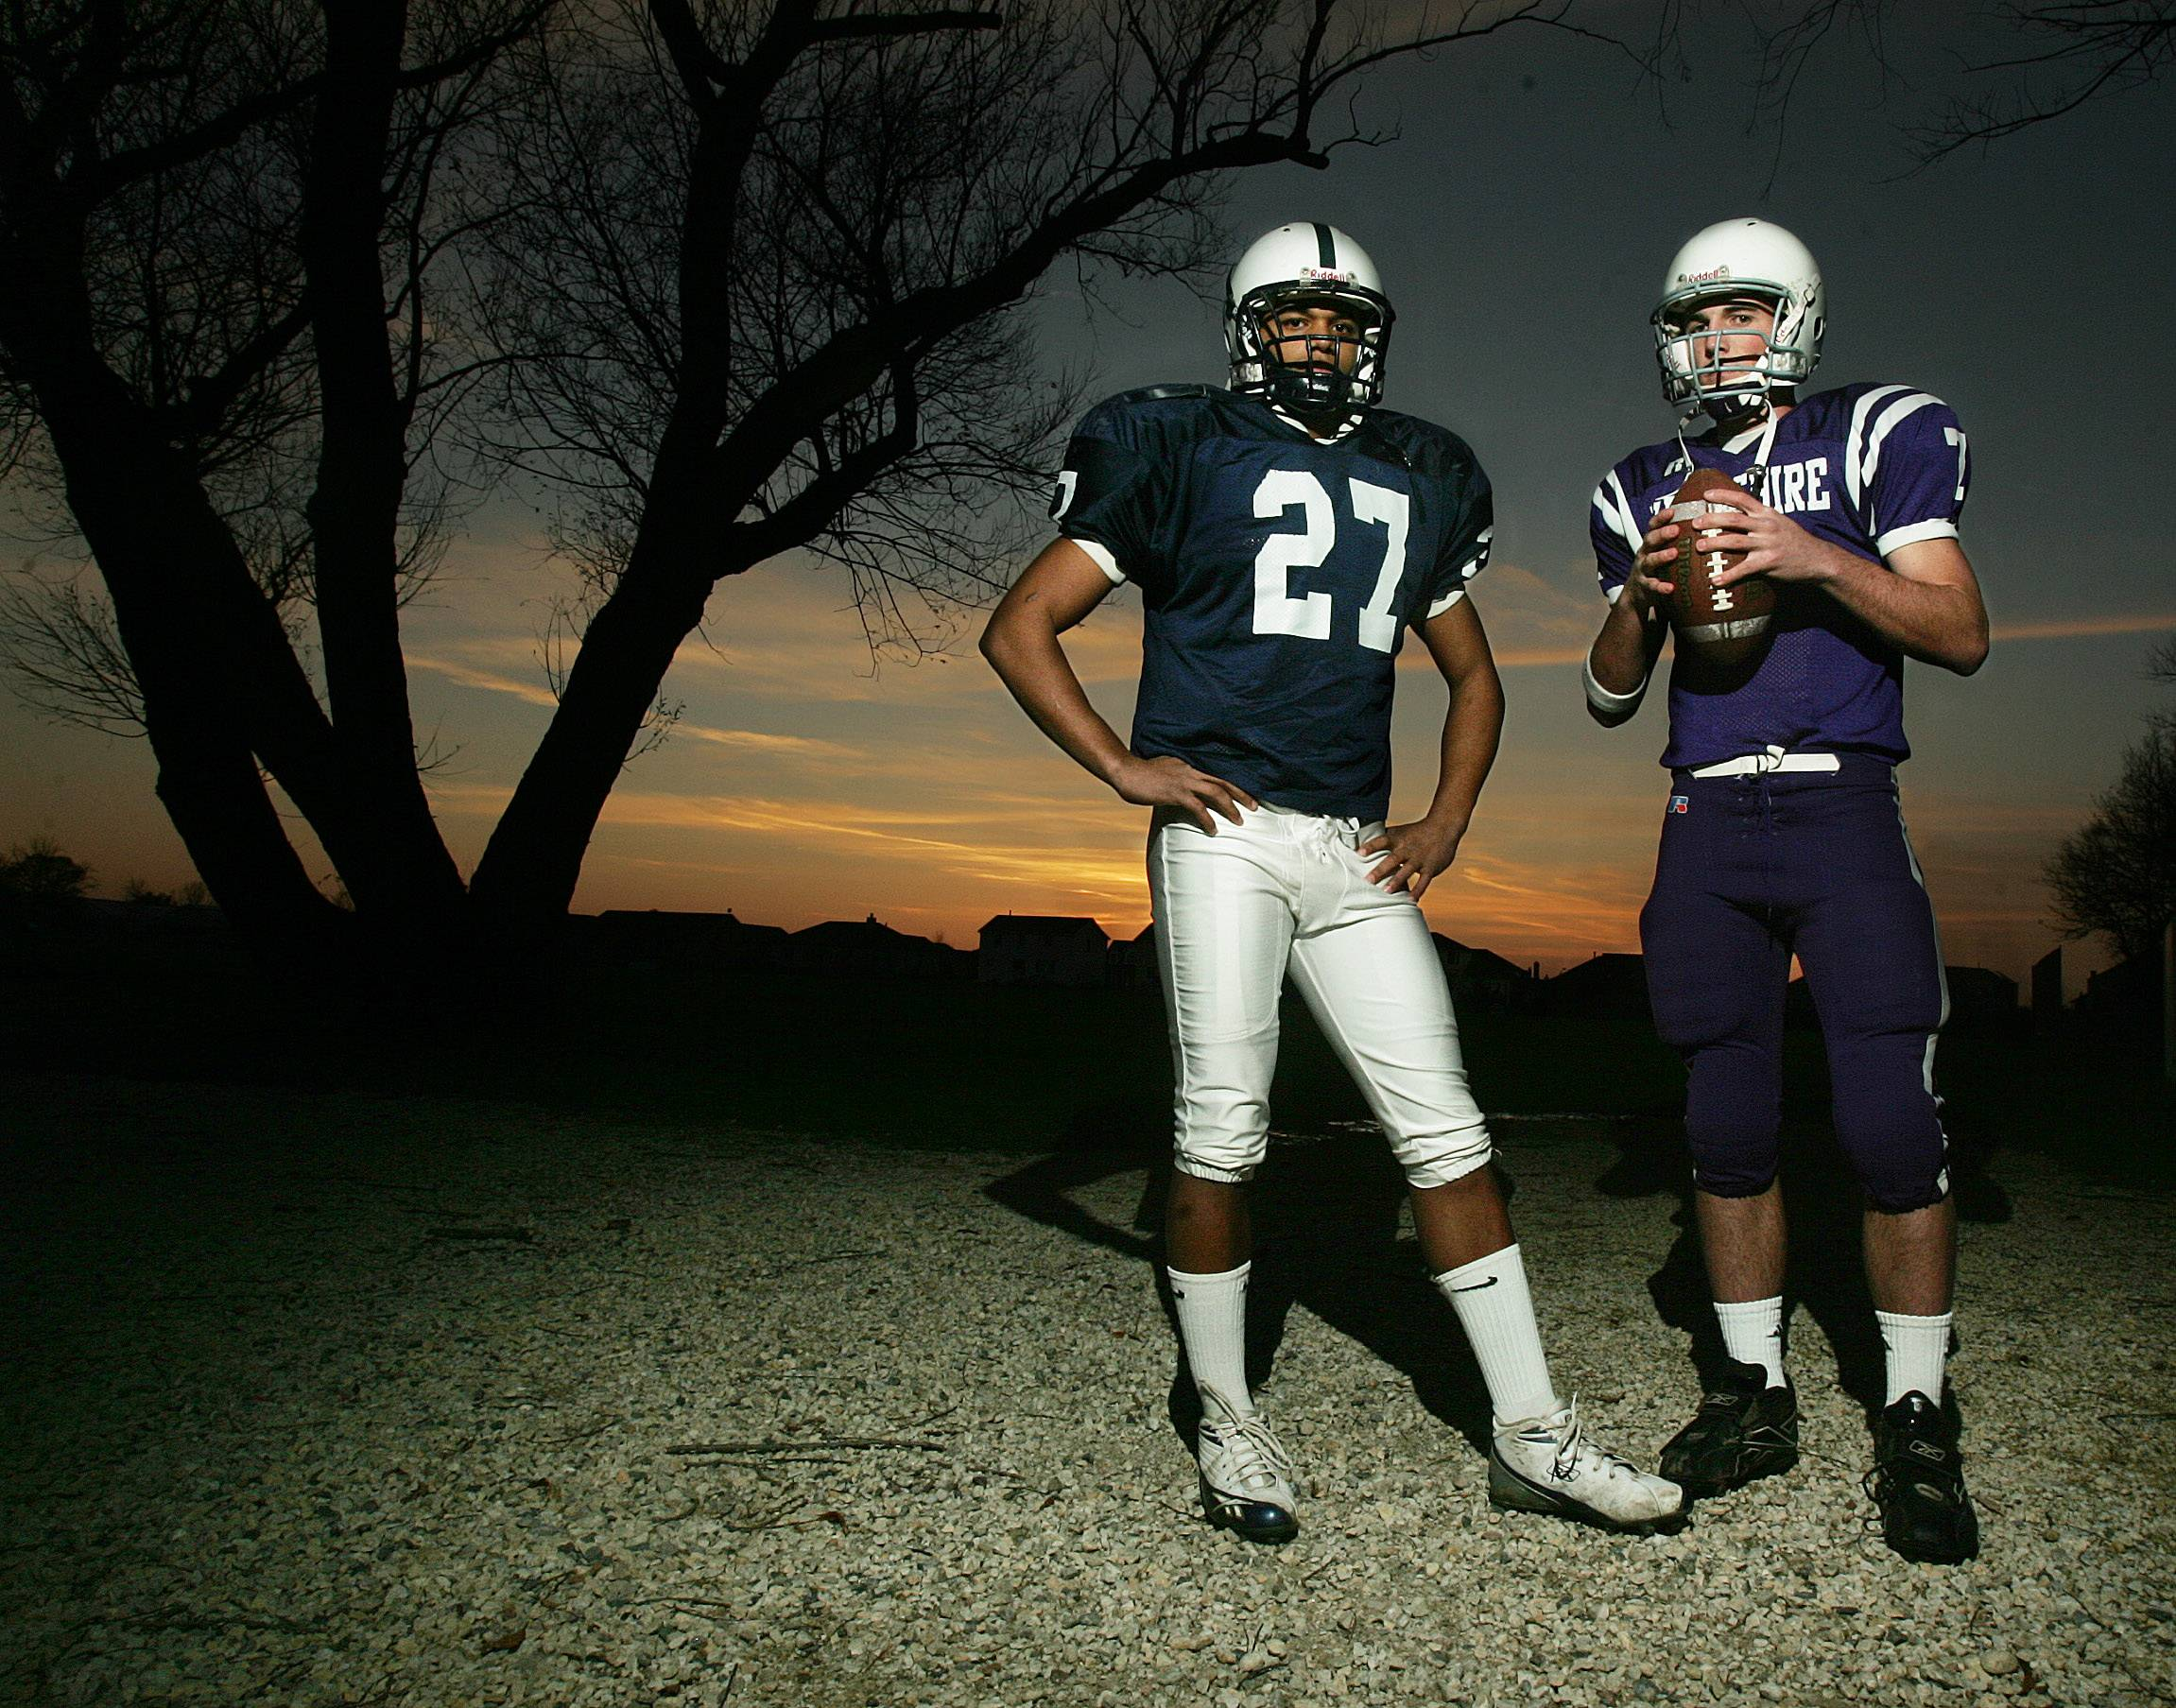 For their efforts on the field in 2005, Cary-Grove's Alex Kube, left, and Hampshire's Jake Goebbert were selected as captains of the Daily Herald's Fox Valley All-Area football team.